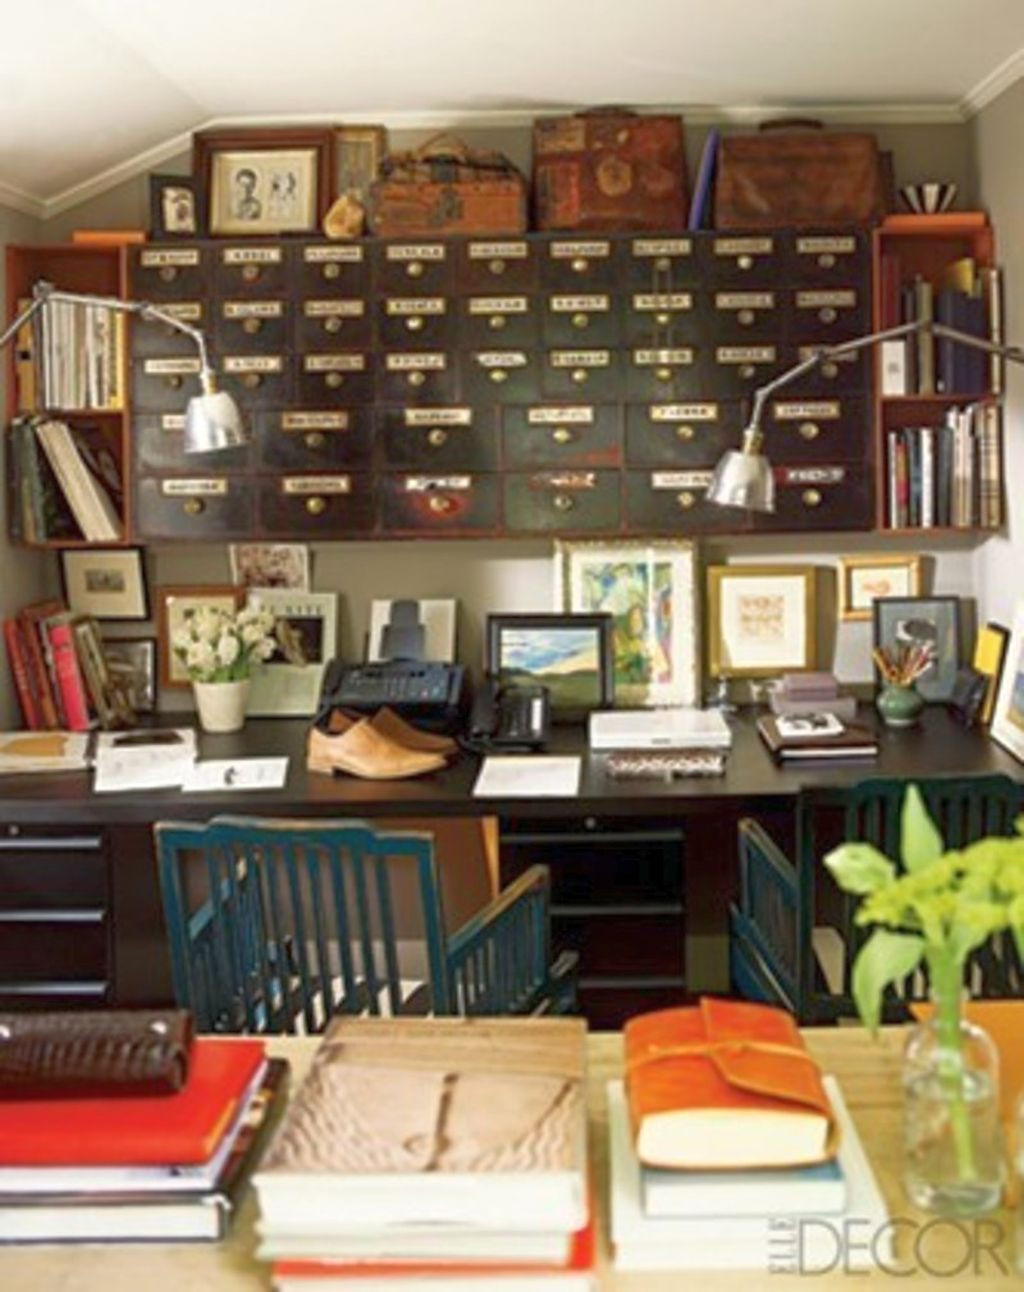 Best ideas about Small Office Space Ideas . Save or Pin 20 Inspiring Home fice Design Ideas for Small Spaces Now.